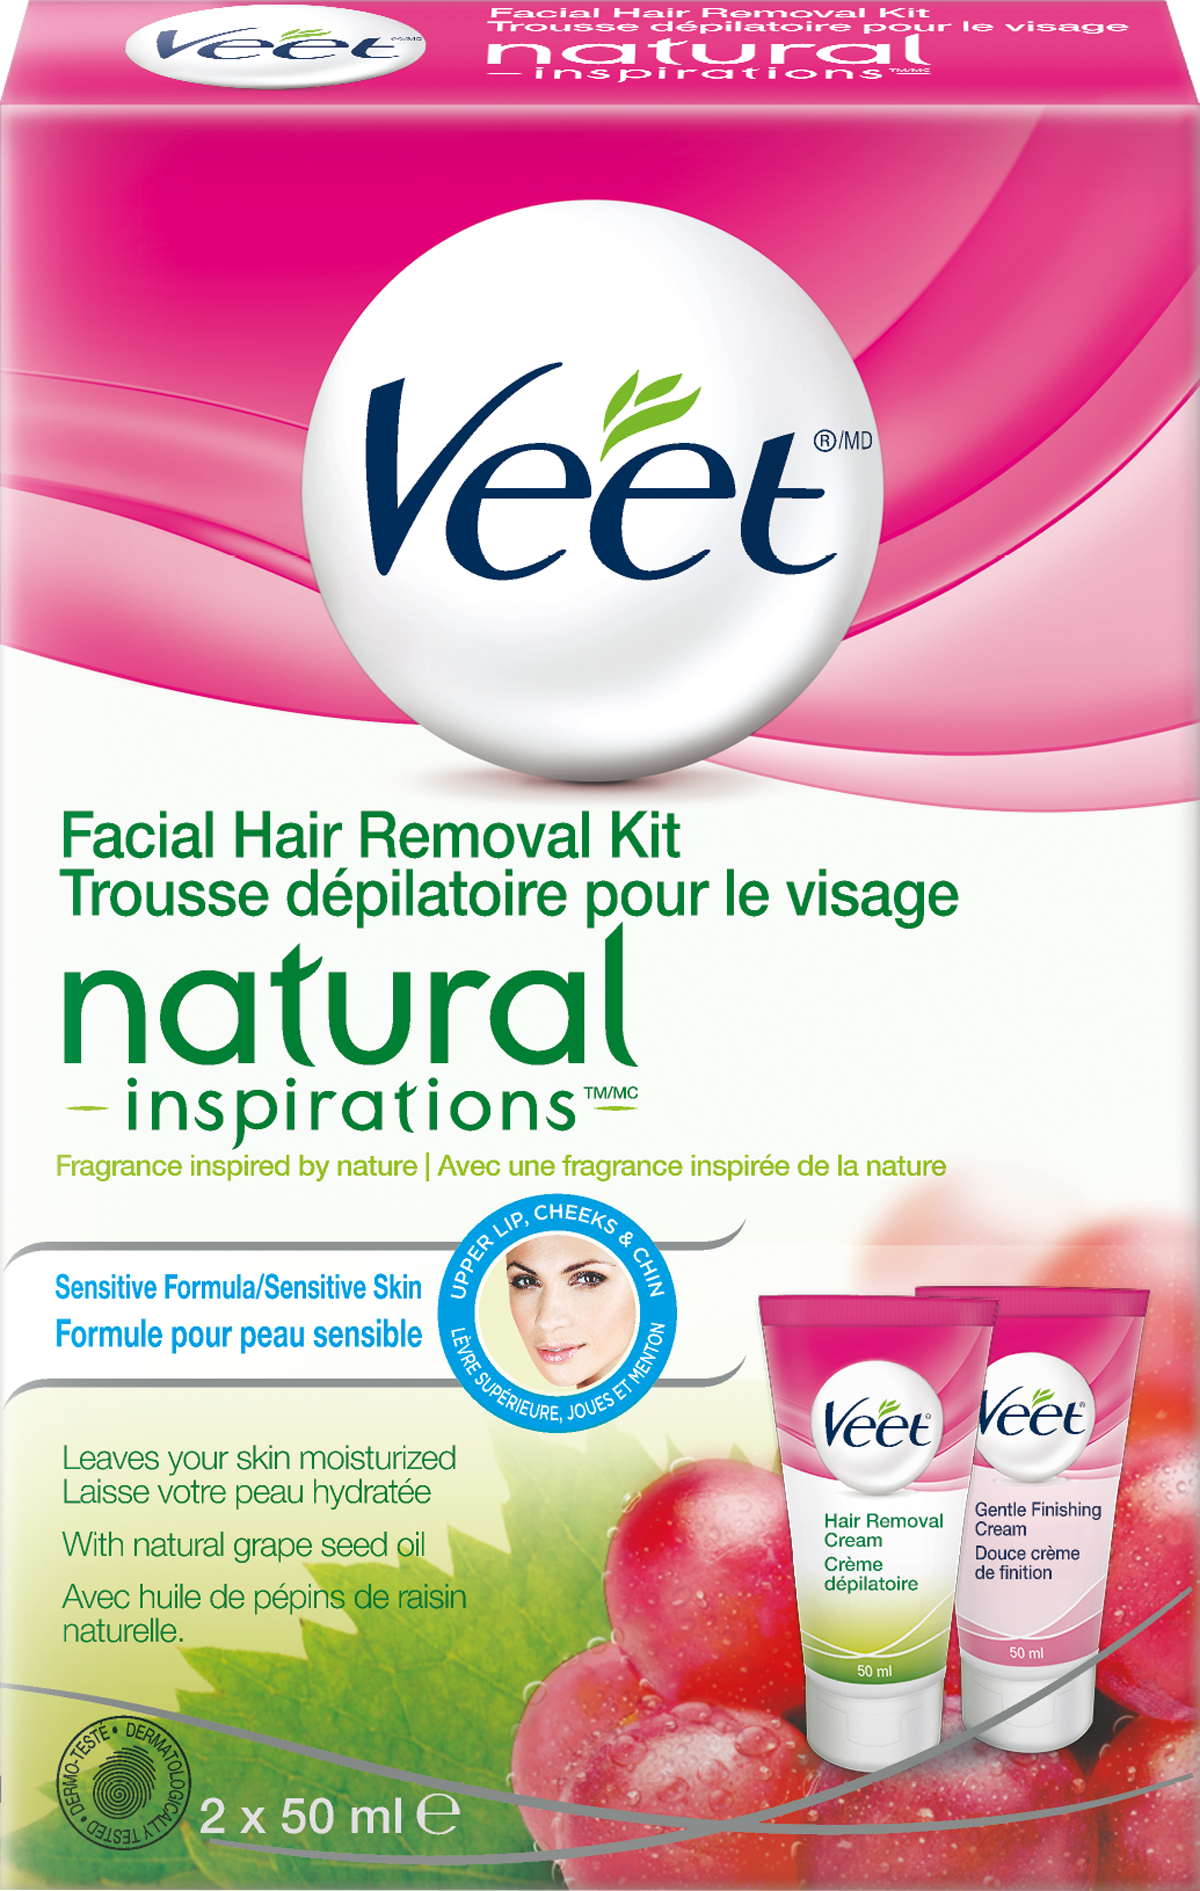 Veet Natural Inspirations Facial Hair Removal Kit Hair Removal